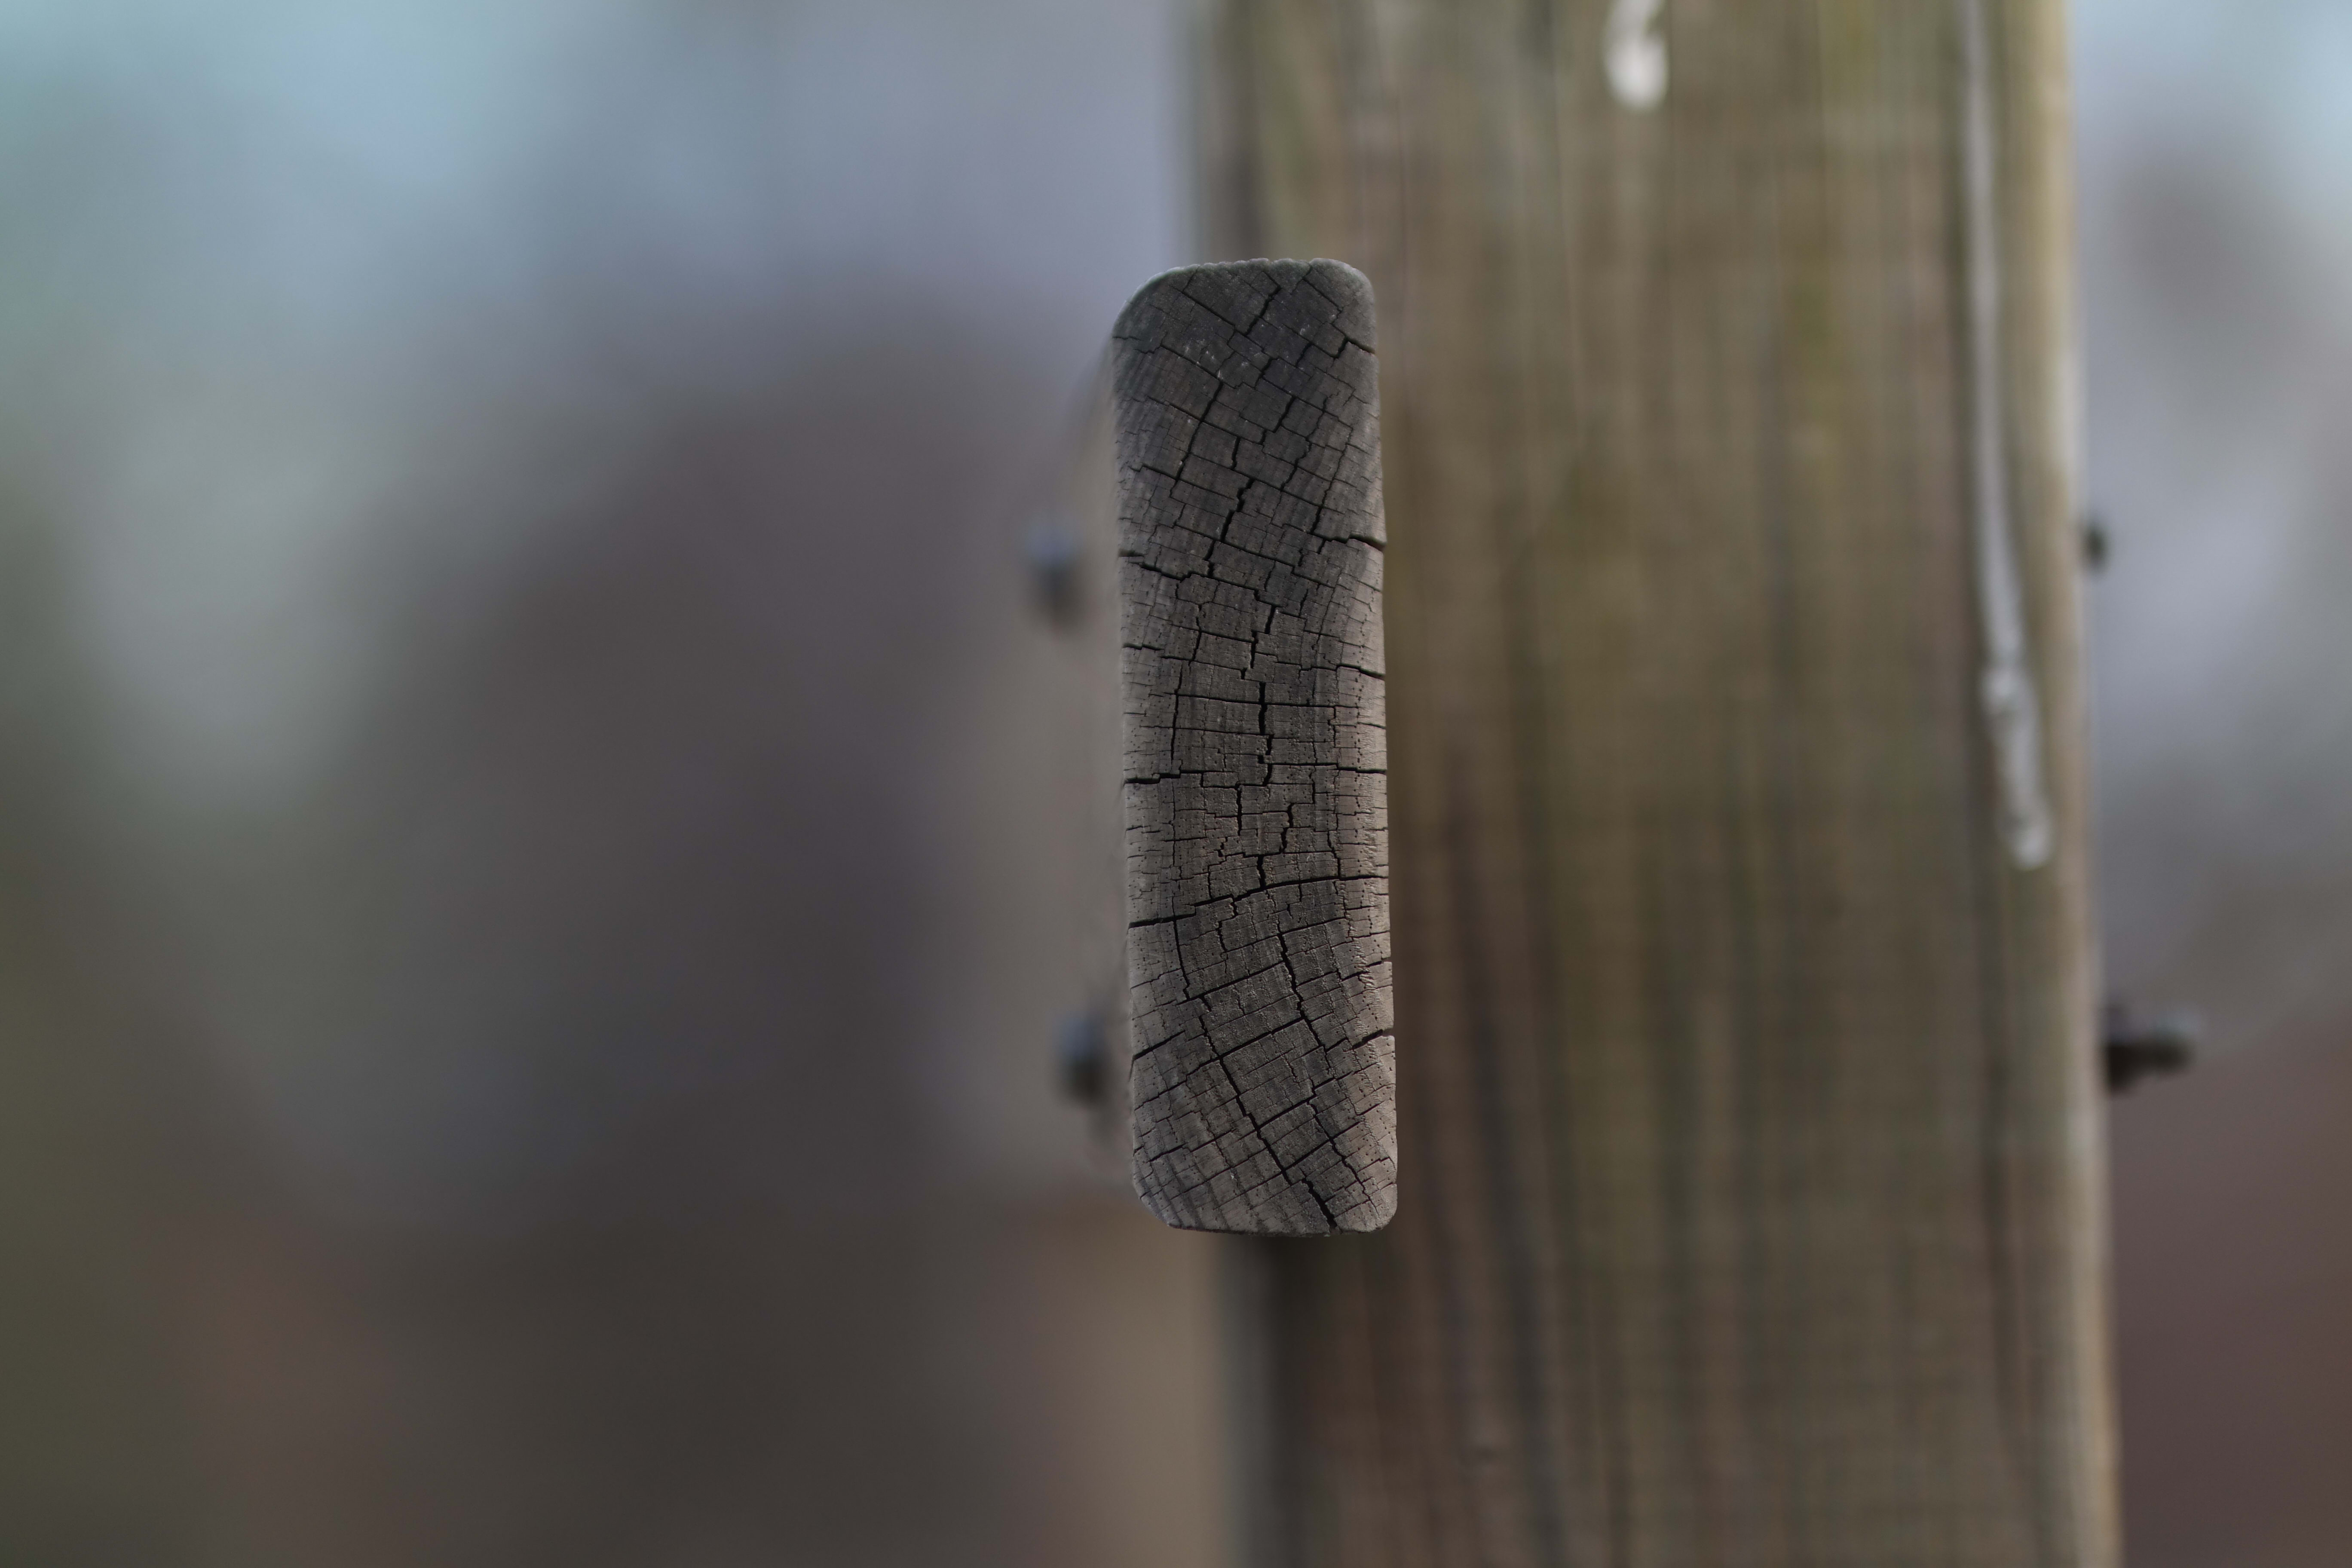 The NX30 paired with the 85mm f/1.4 lens produces sharp details, excellent bokeh, and very shallow depth of field.